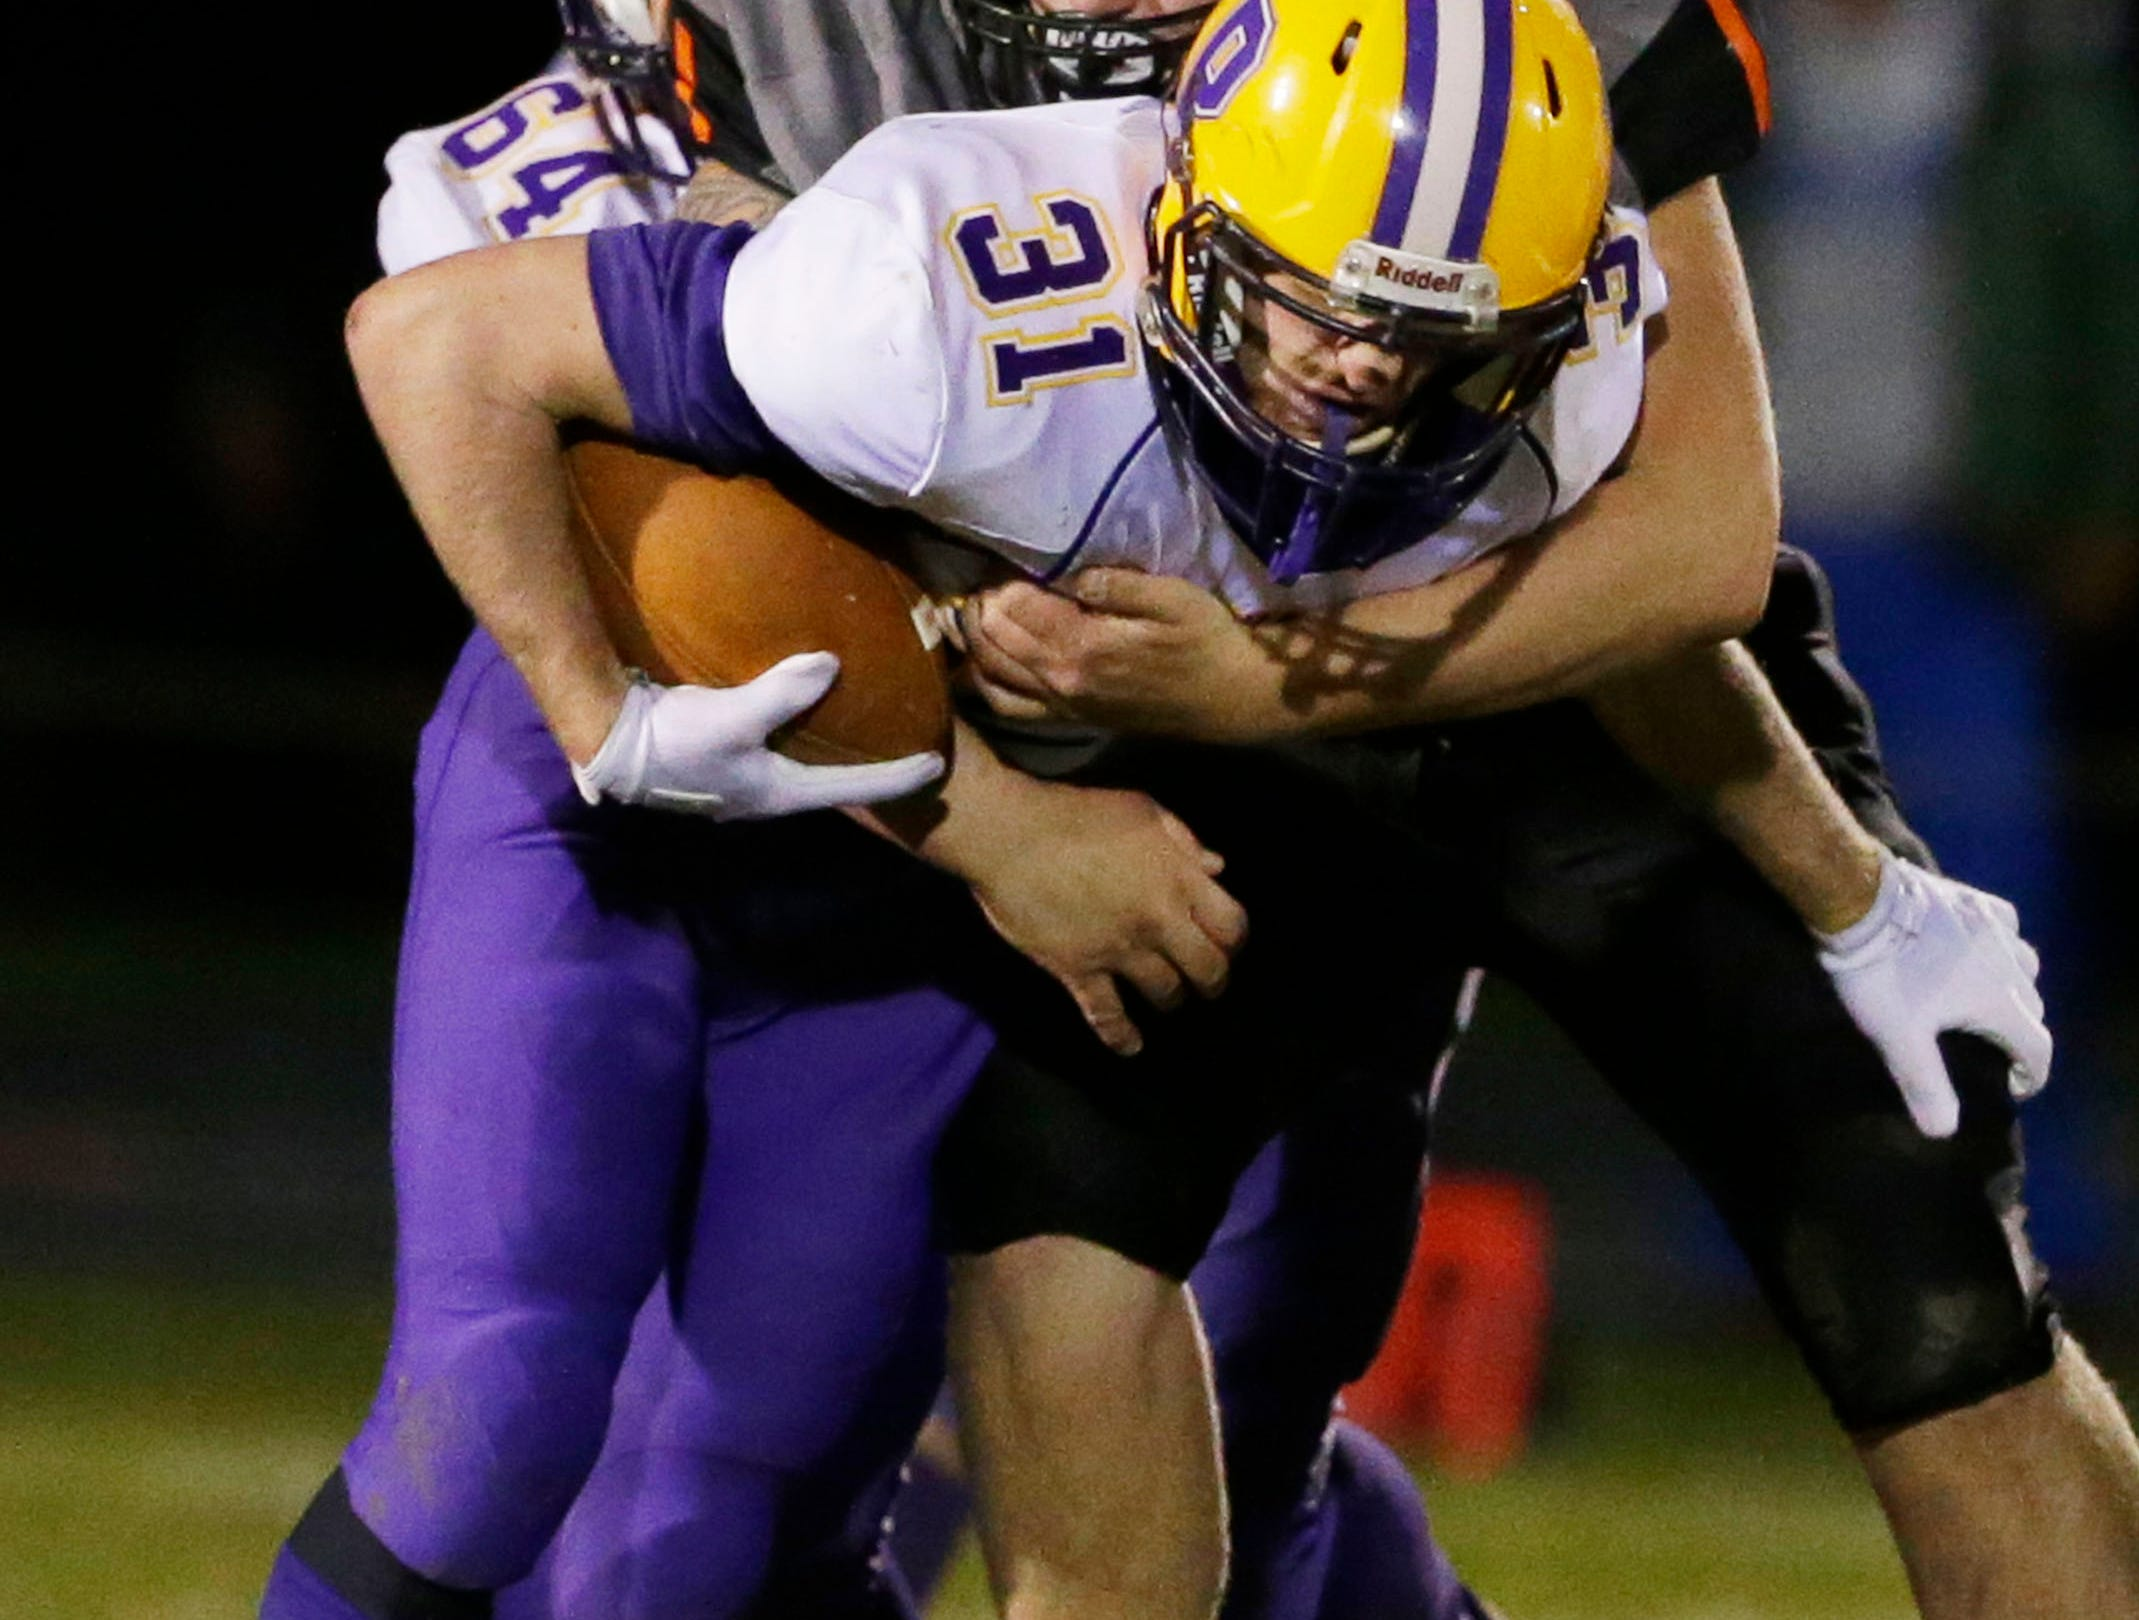 Pittsville's Trayson Ortner (31) is pulled down by a Reedsville player, Friday, November 2, 2018, in Reedsville, Wis.